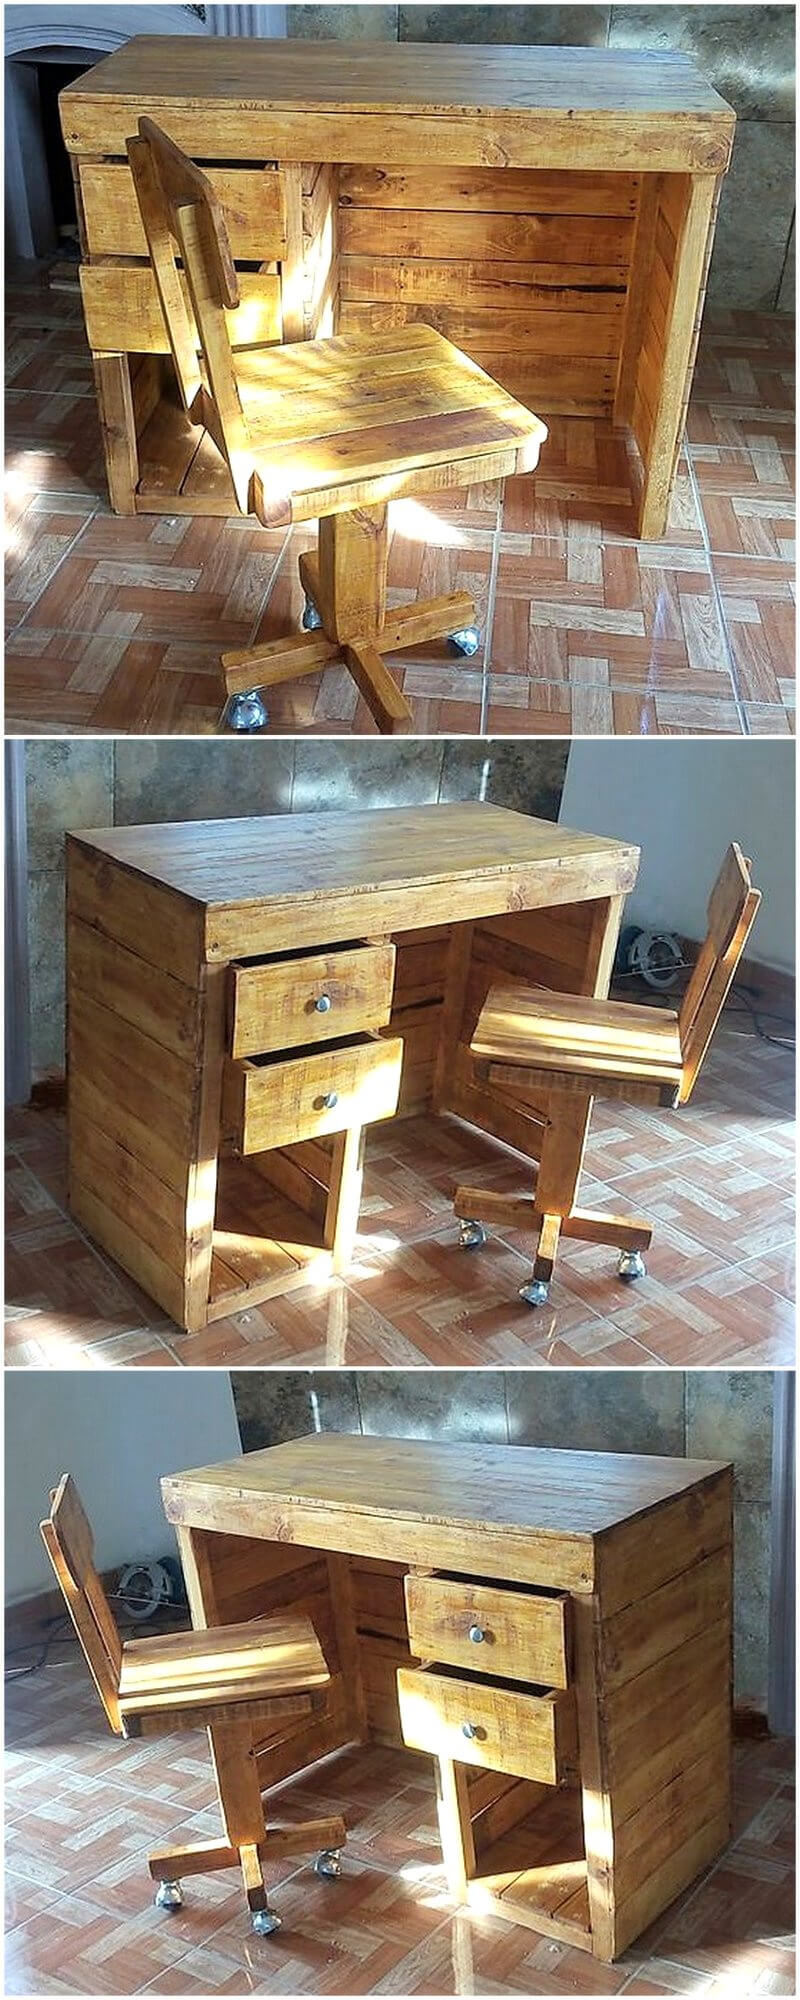 Pallet Desk And Chair